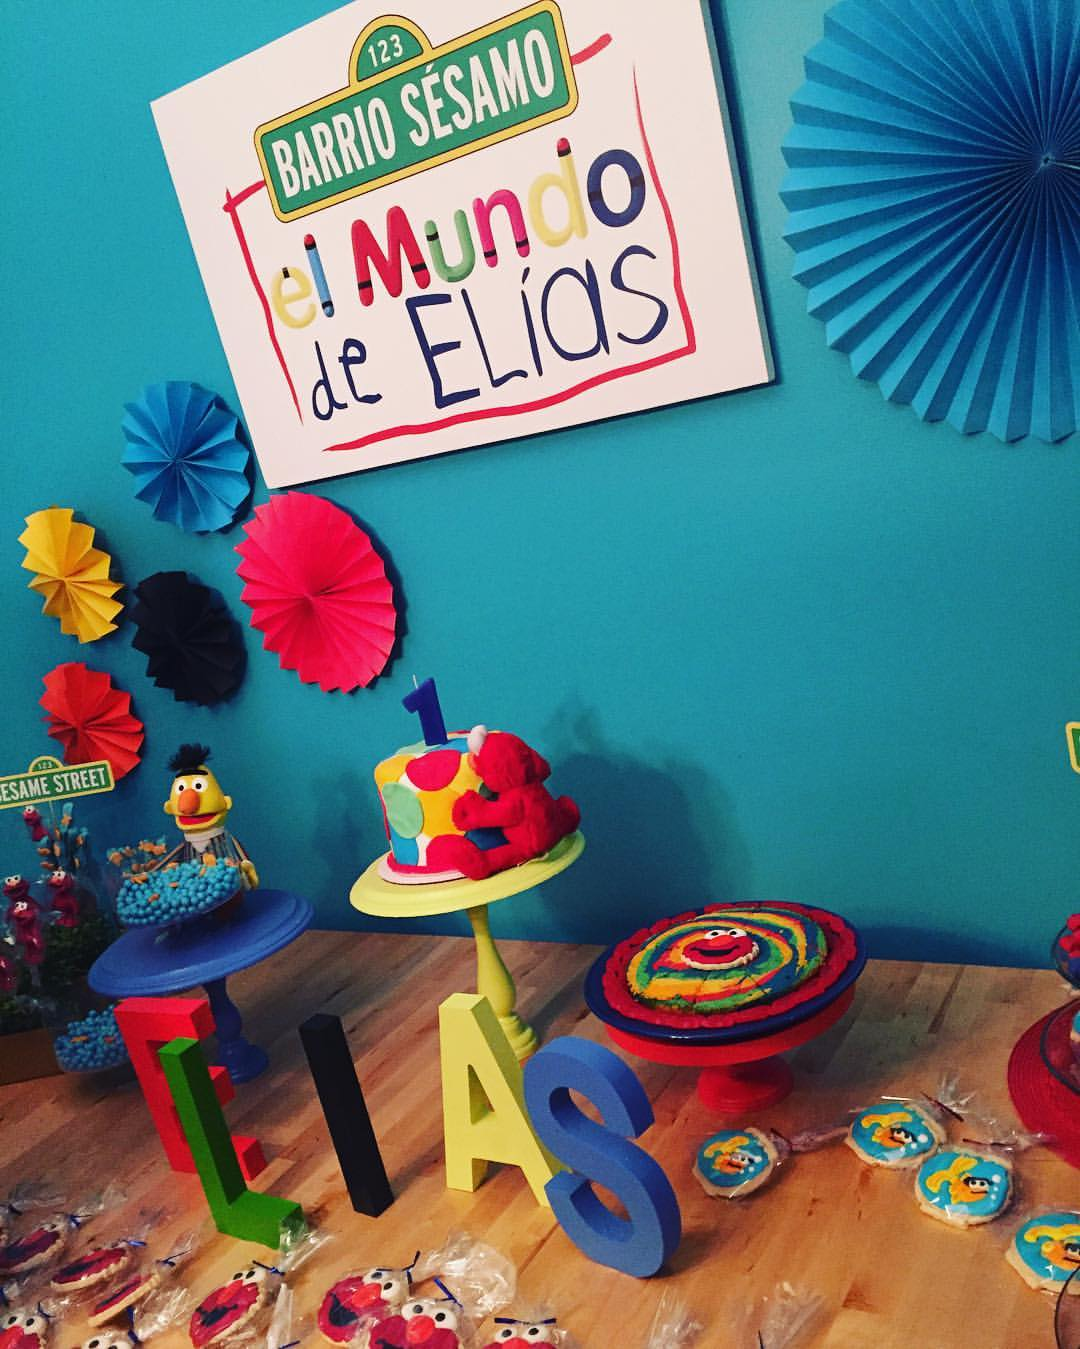 Awesome El Mundo de Elías birthday sign made by Nico